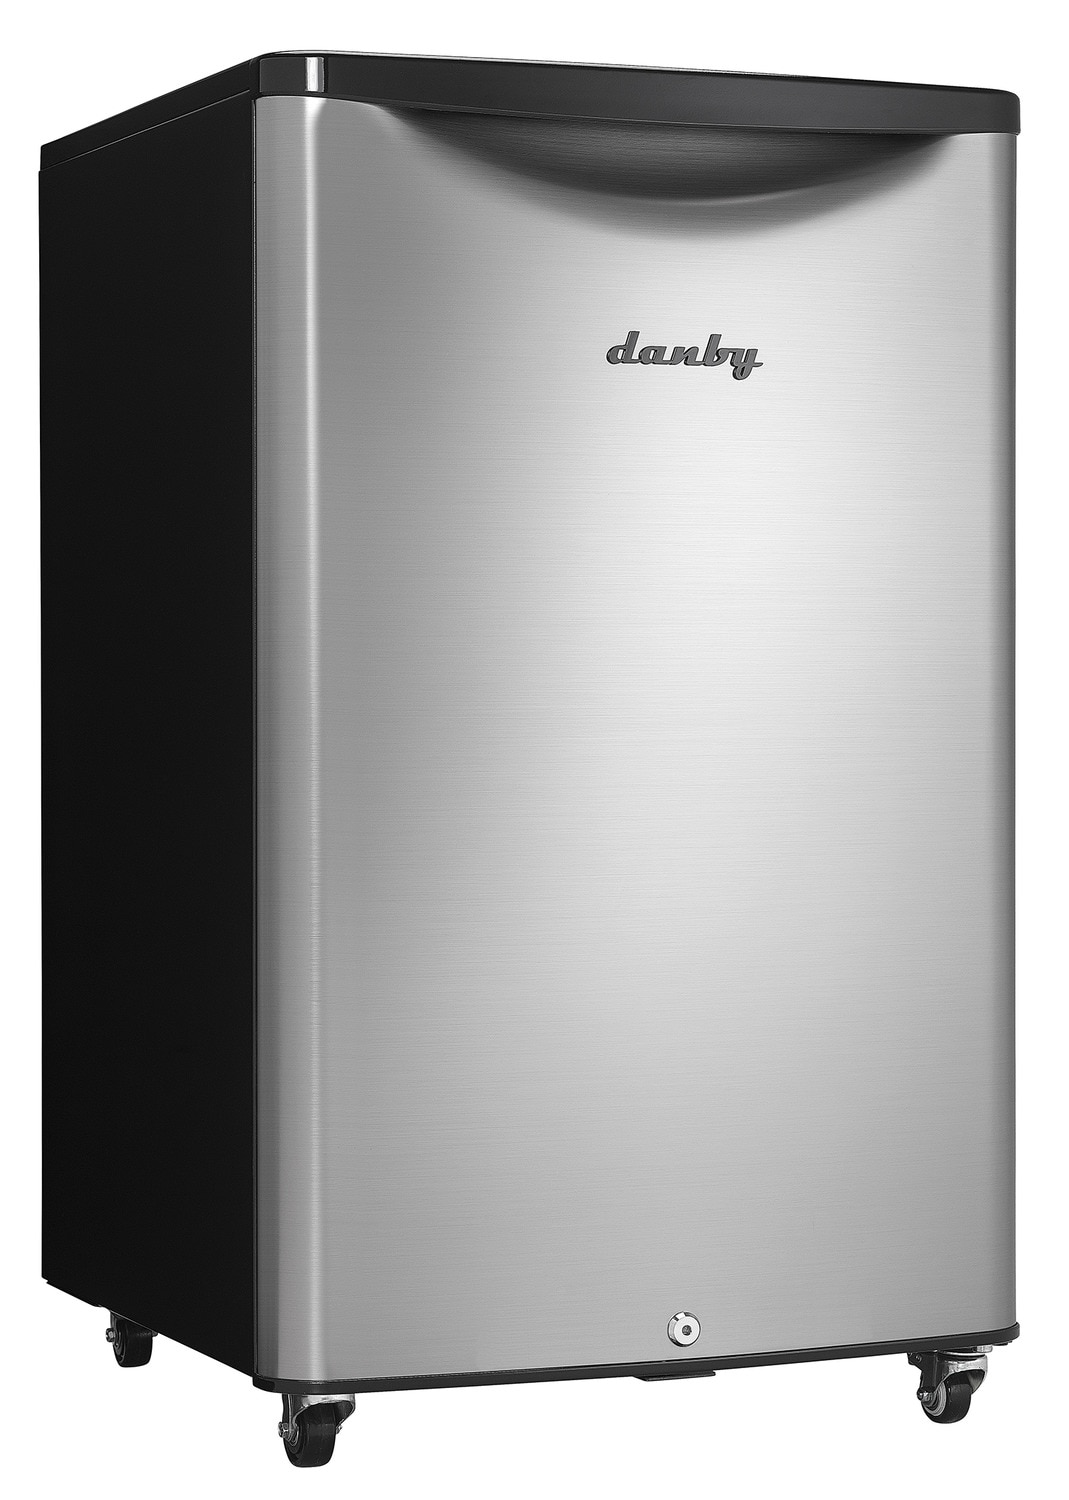 Danby Stainless Steel Outdoor Compact Refrigerator 4 4 Cu Ft Dar033a1bsldbo Leon 39 S